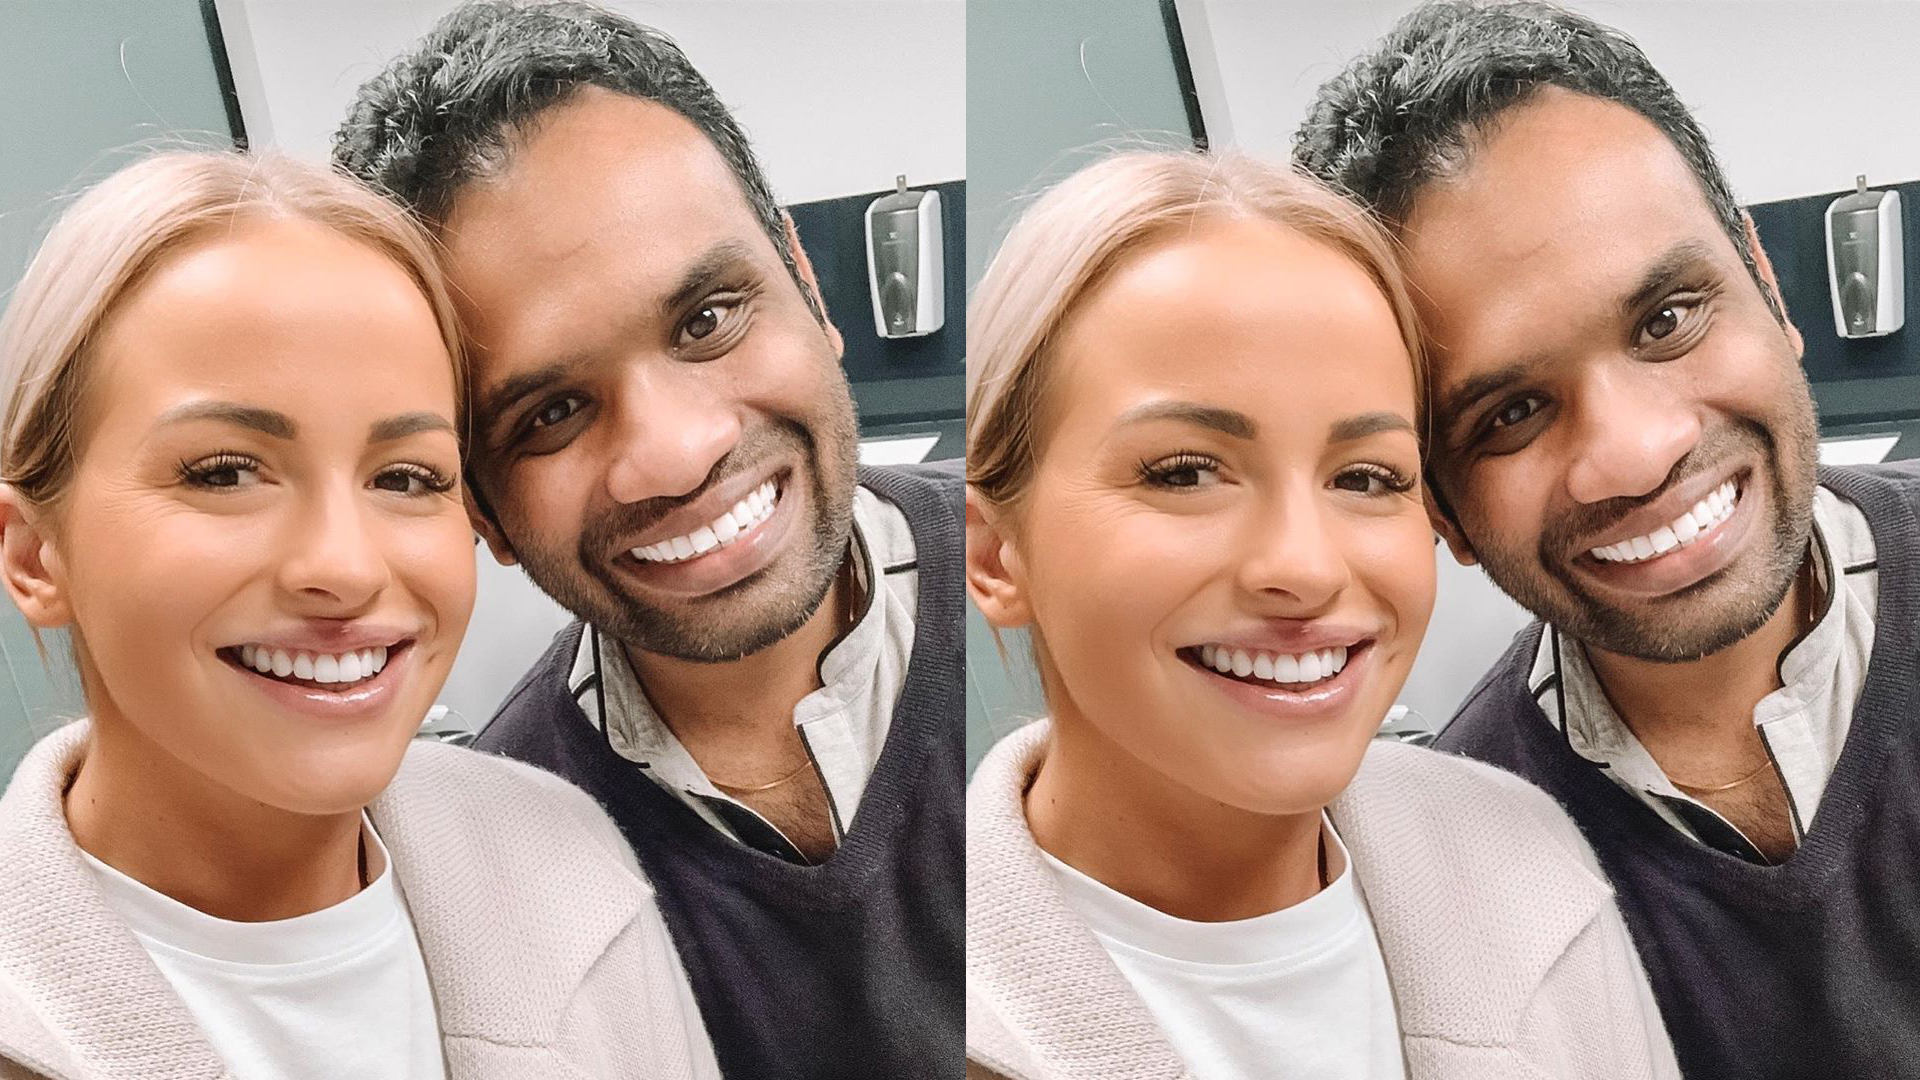 Renee Stewart from Christchurch with Dr Deepan Duraisamy at Vogue Dental Studios